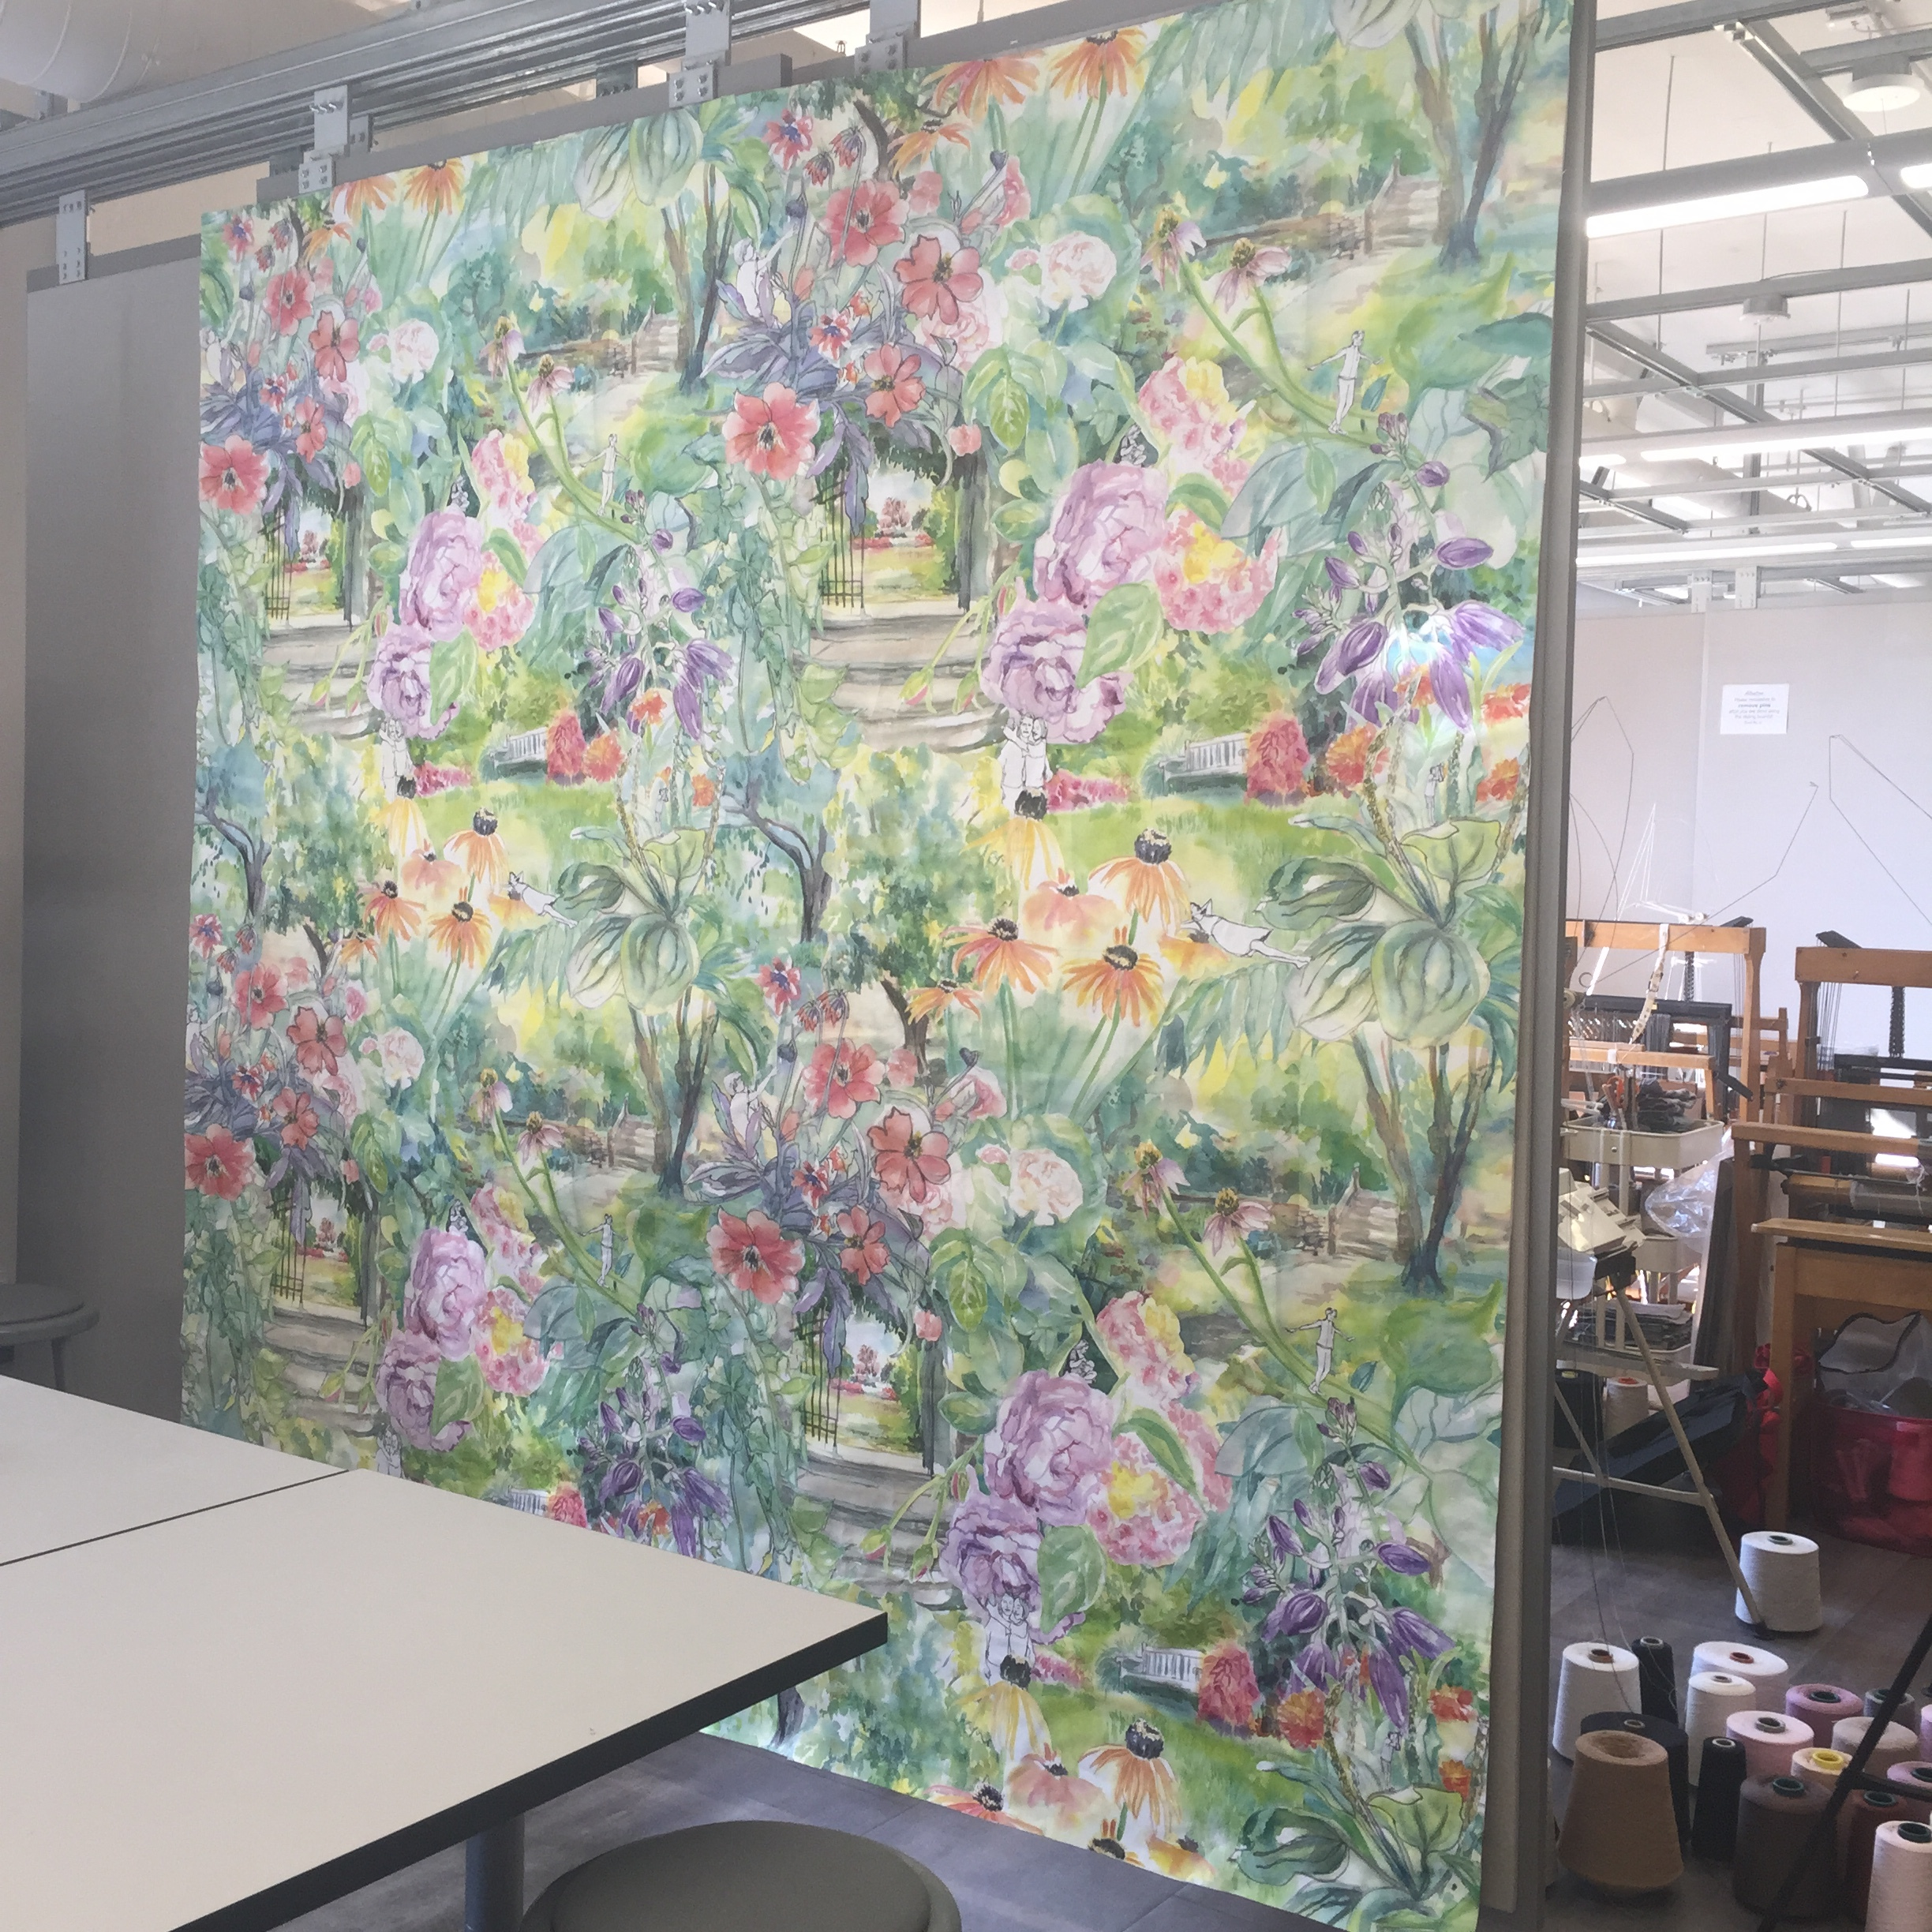 This project is pretty intense however,I am enjoying it. Each week I had to create 10 original watercolor paintings from life that would eventually be scanned, collaged and put into a repeat. The repeat is 4'x4' 8x8 feet total.